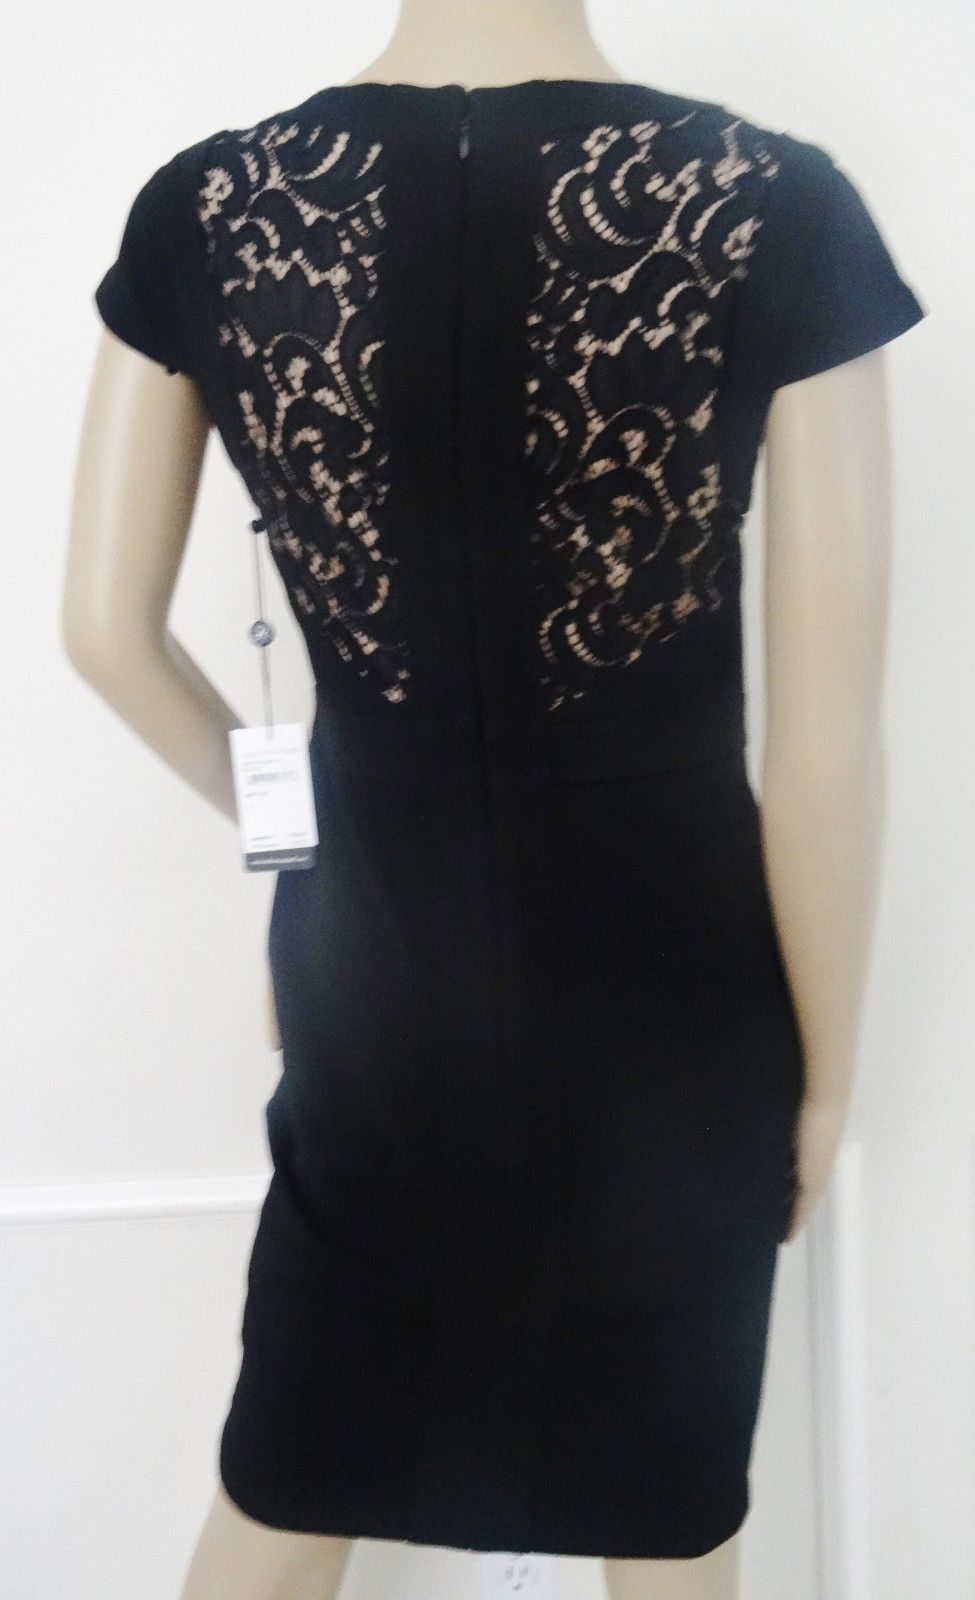 Nwt Adrianna Papell Sleveless Lace  Cocktail Sheath Dress Sz 6 Black Nude $180